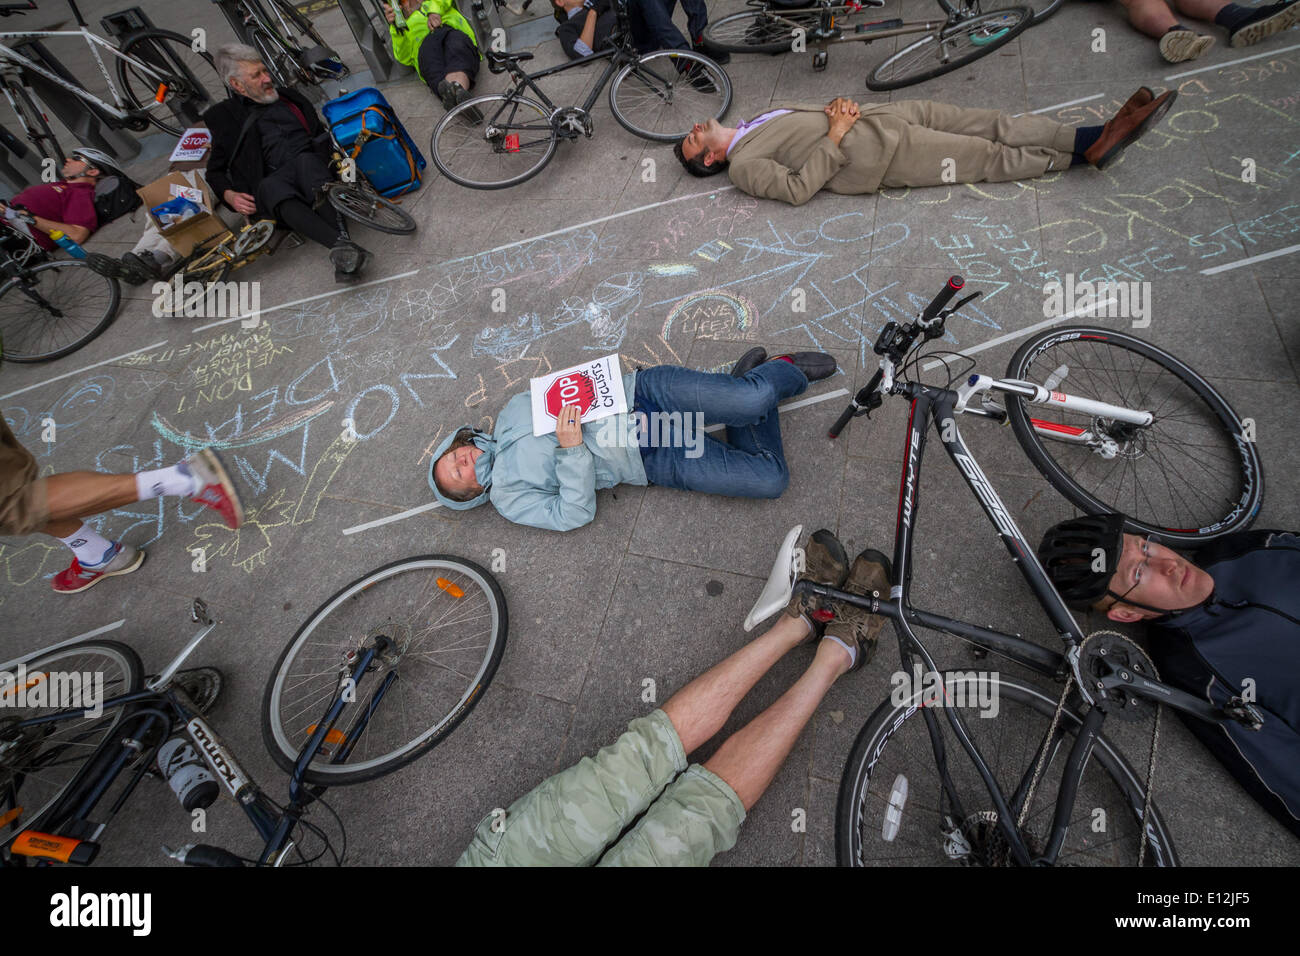 London, UK. 21st May, 2014. Jenny Jones (centre) of the Green Party joins the London cycling protest 'die-in'. Credit:  Guy Corbishley/Alamy Live News - Stock Image